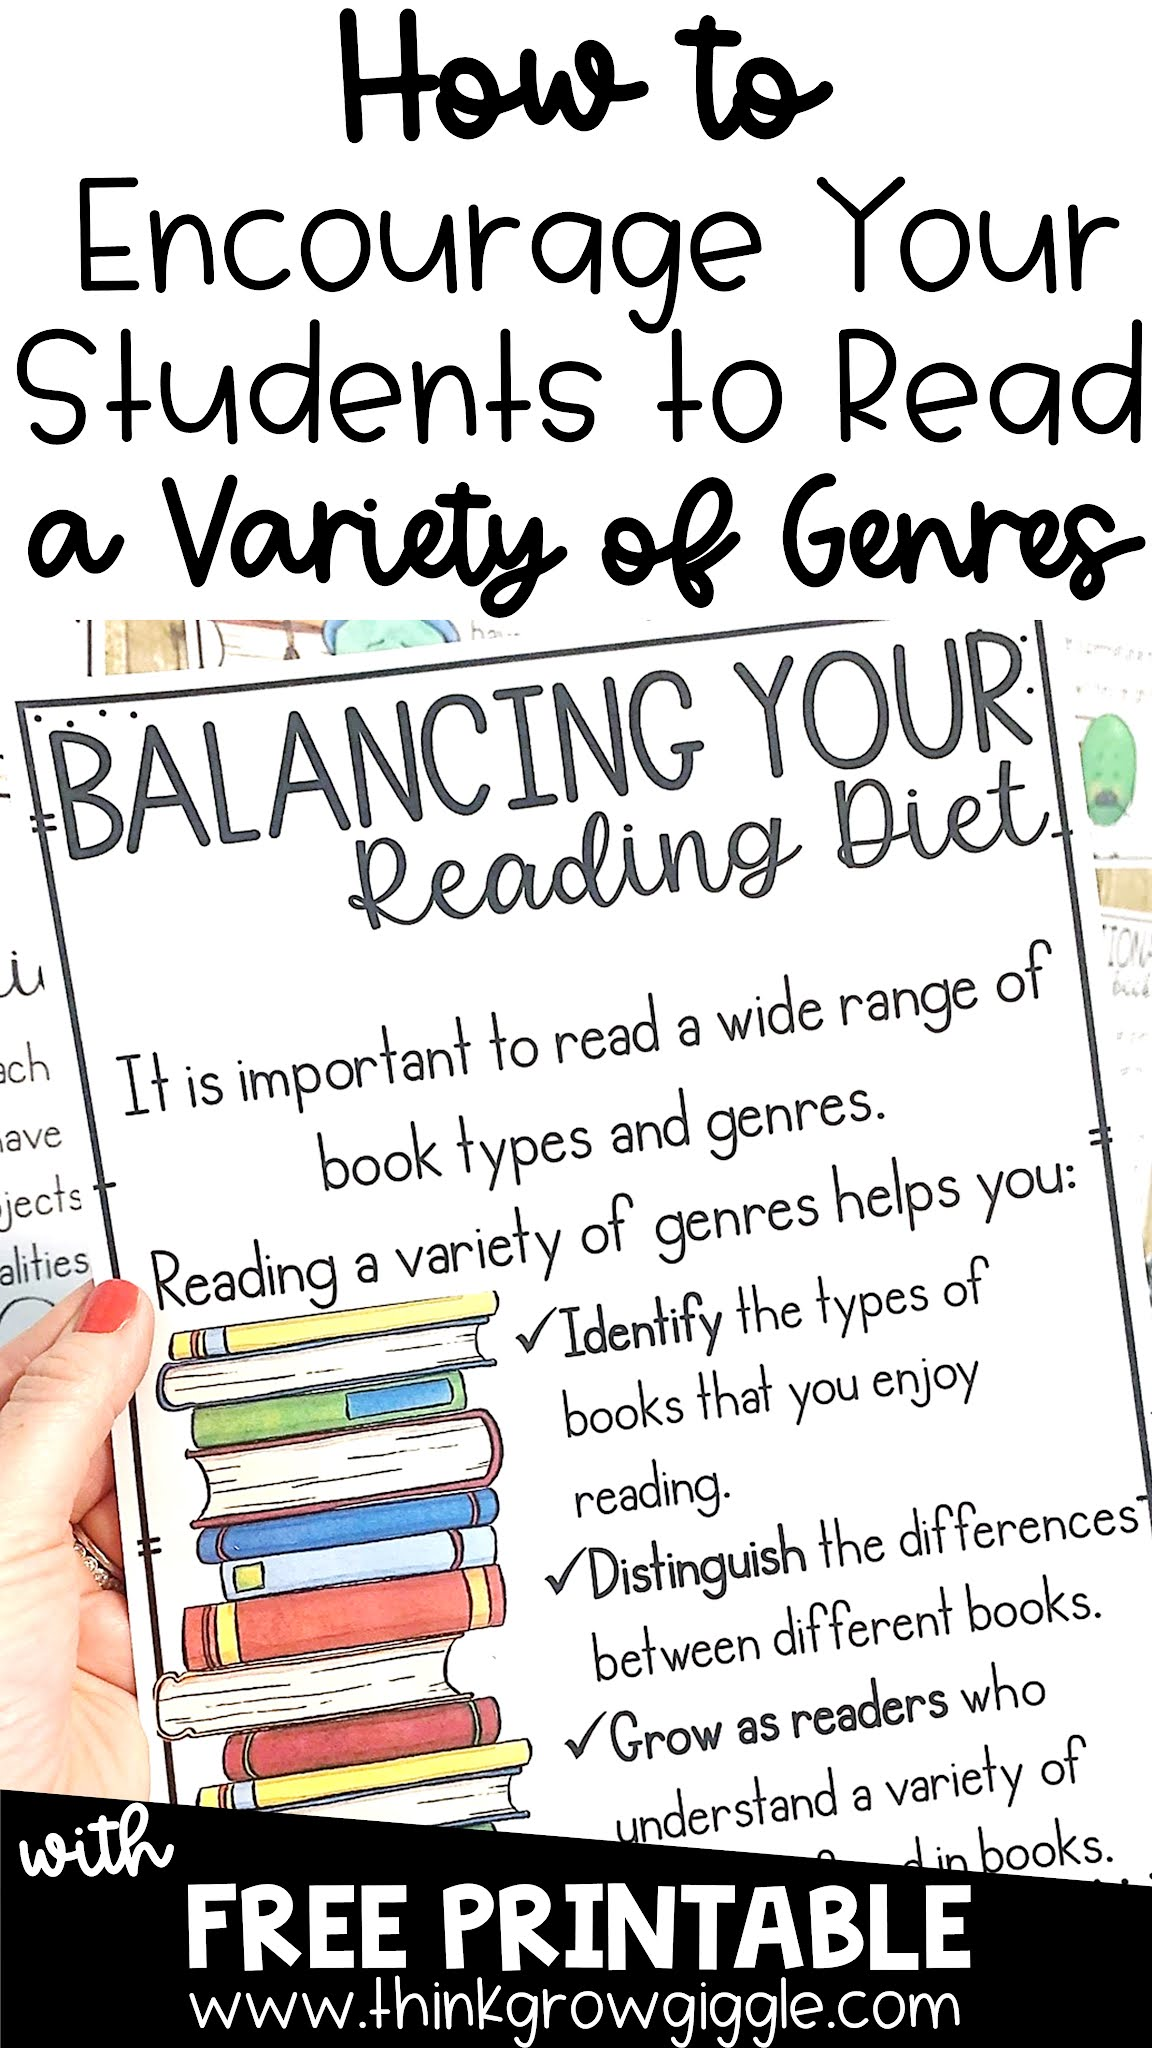 using a balanced diet for reading genre lessons